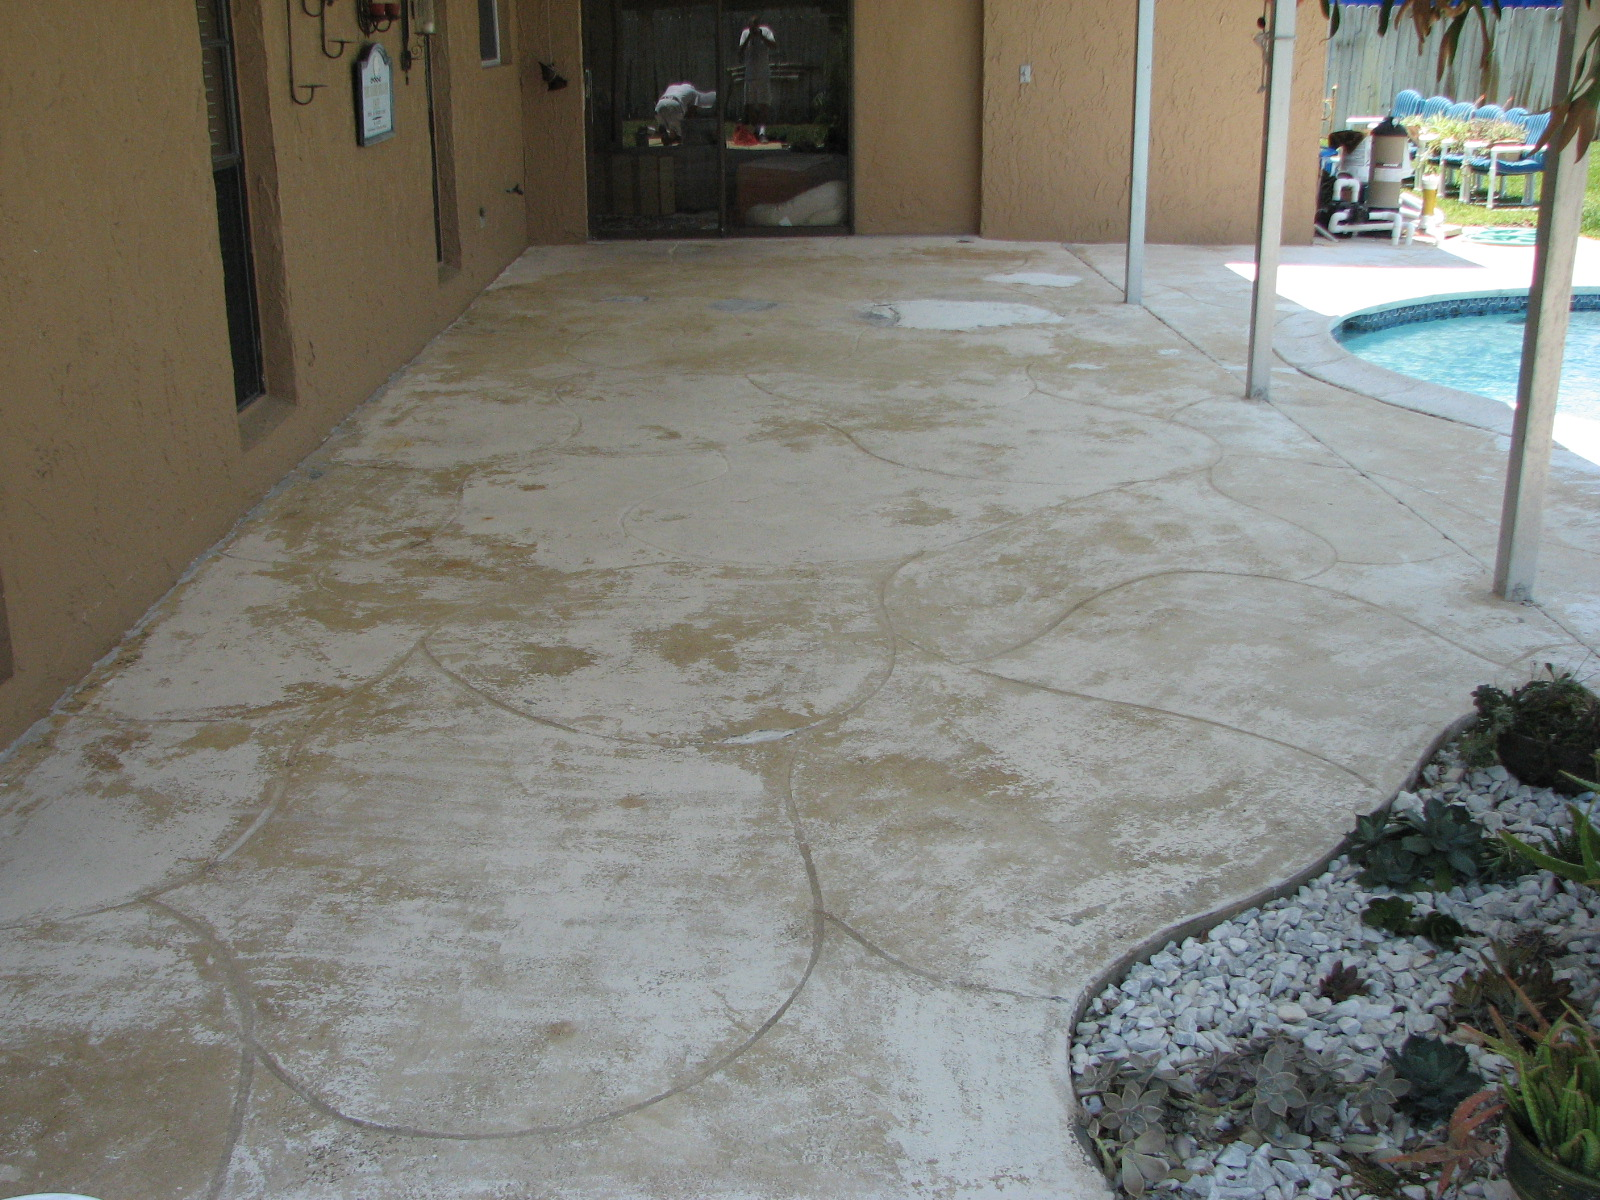 pool deck repair | melbourne,fl | pool deck cracks | pooldeck painting